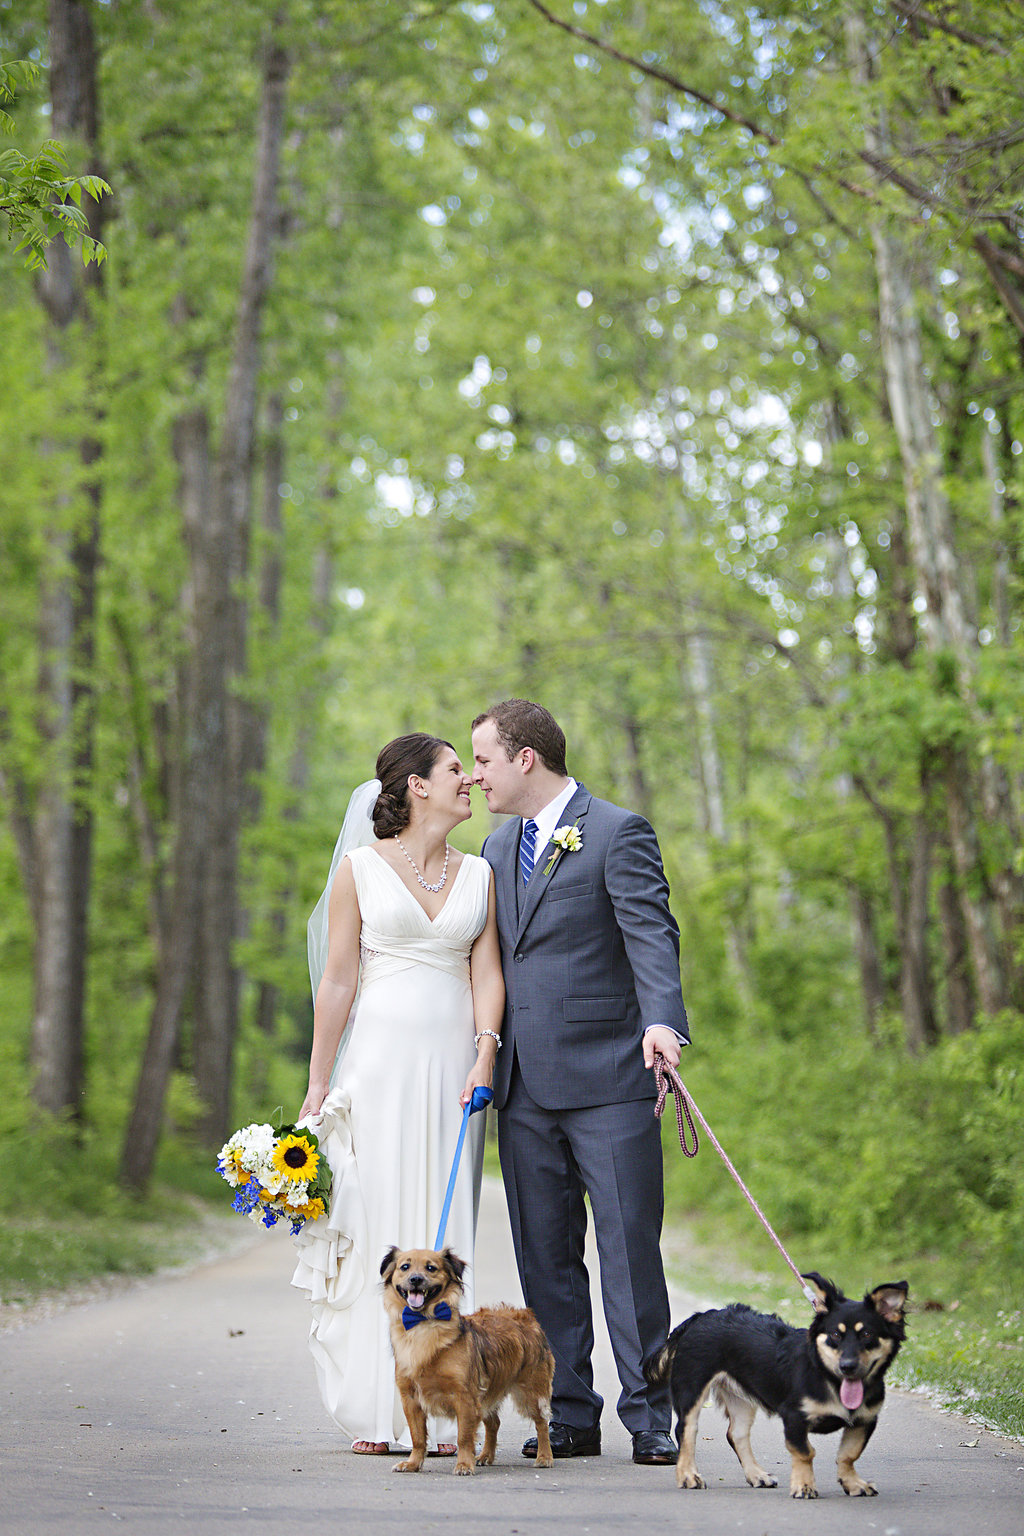 Real Weddings: Natalie + Collin